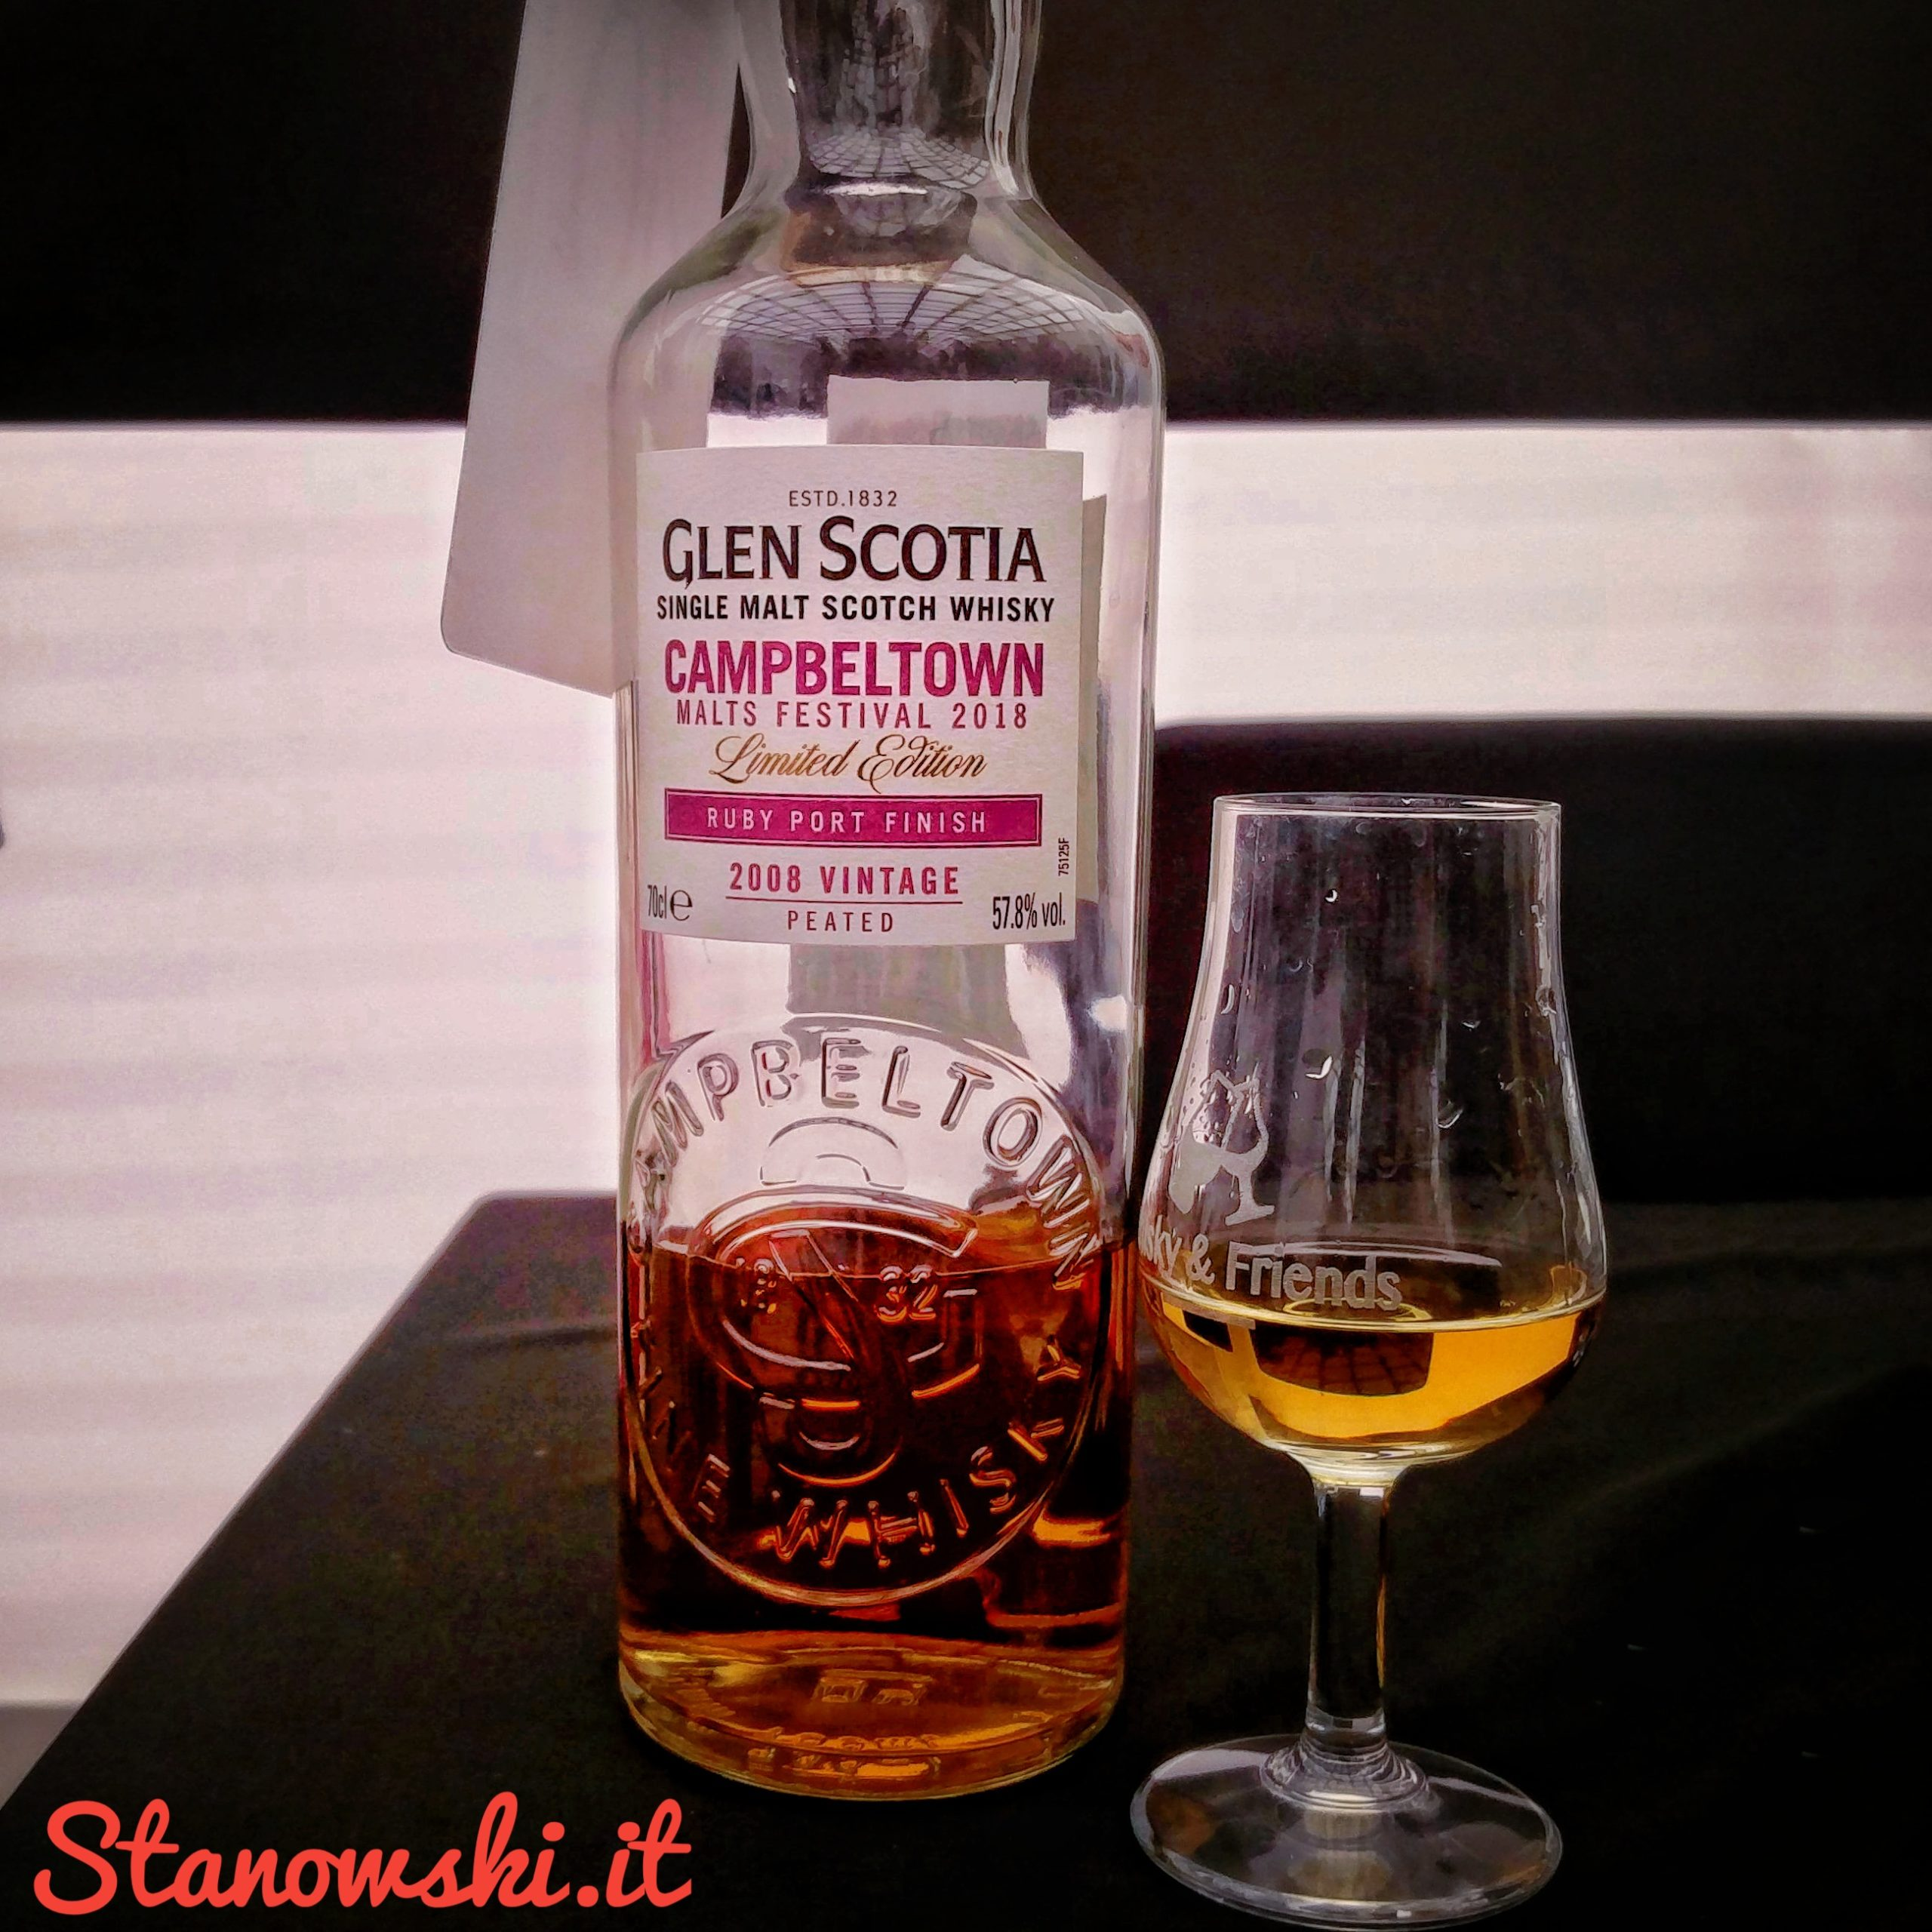 Glen Scotia 2008 Port Cask Finish